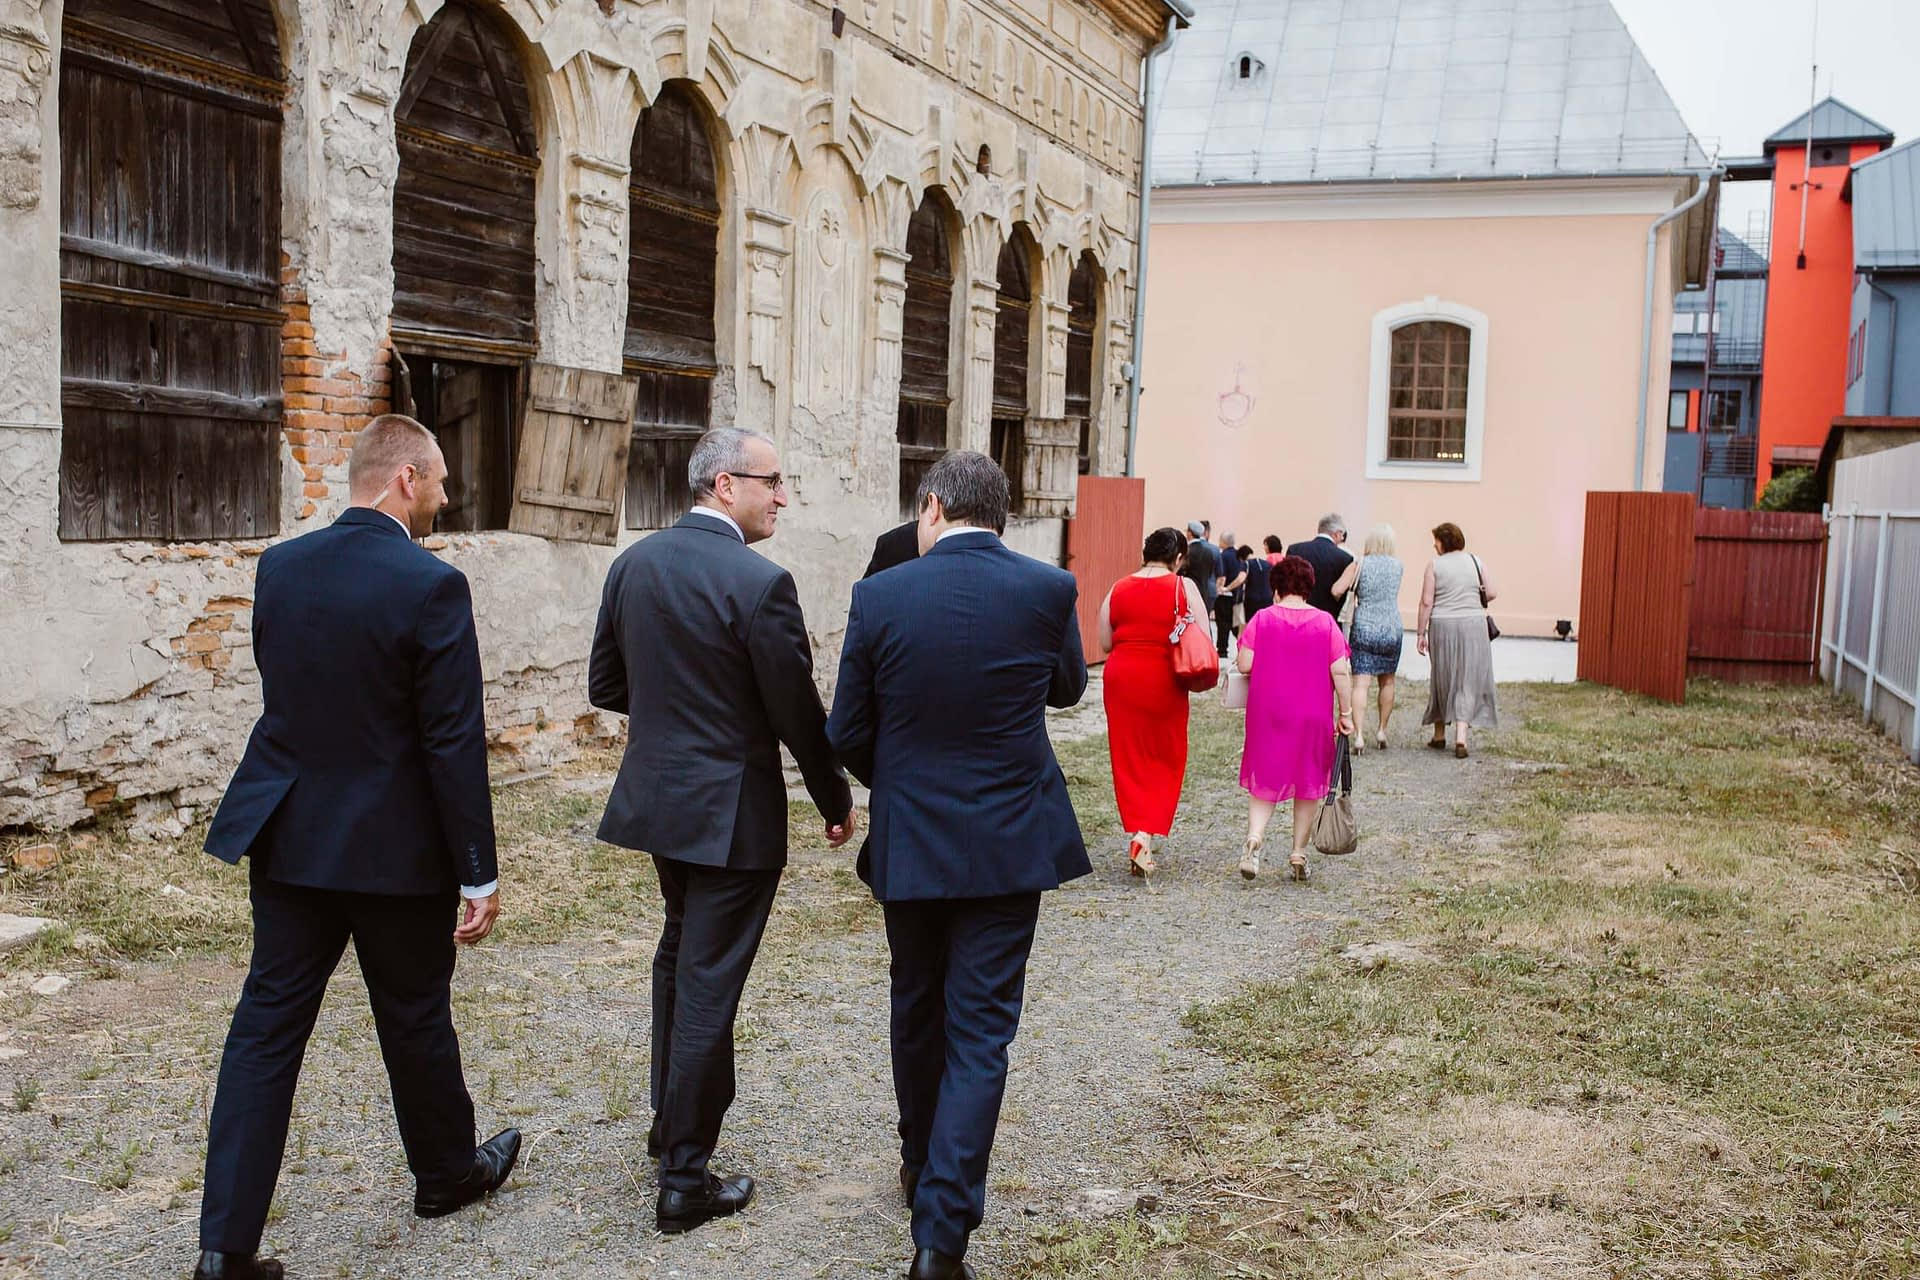 Many of the attendees of the first ceremony walked over to the synagogue afterwards to hear speeches by UZZNO representatives, city and government officials, H.E. Zvi Aviner Vapni, Israeli Ambassador to Slovakia, and Mr. Giora Solar representing the BJPC